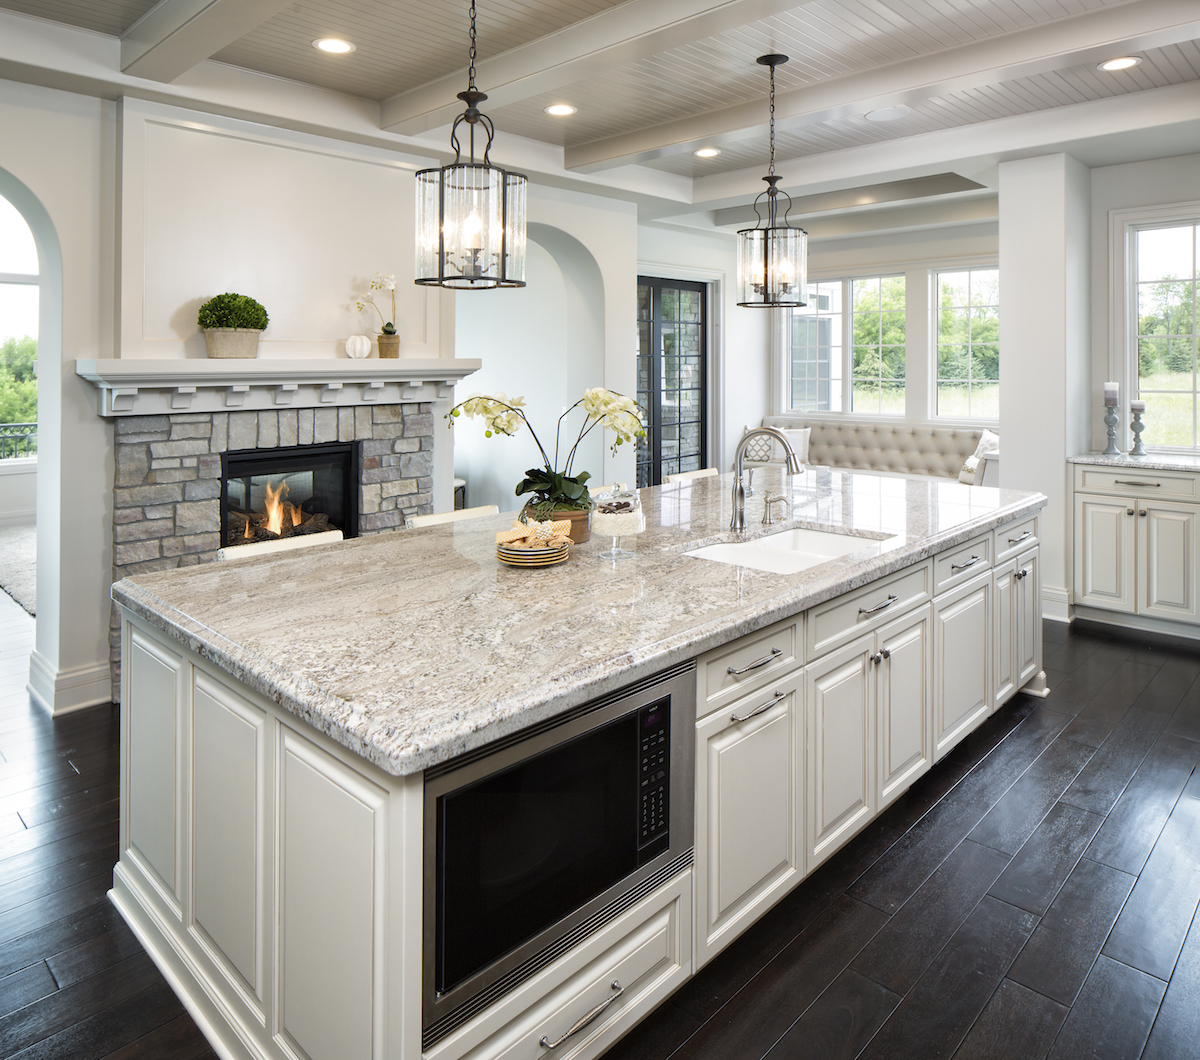 GRANITE - Granite is by far the most common rock found in the outer crust of the planet. Granite is formed by the cooling of magma in the ground.Granite is an excellent choice for your new countertops. From simple colors to incredible super exotics, granite is a natural choice for your tops.